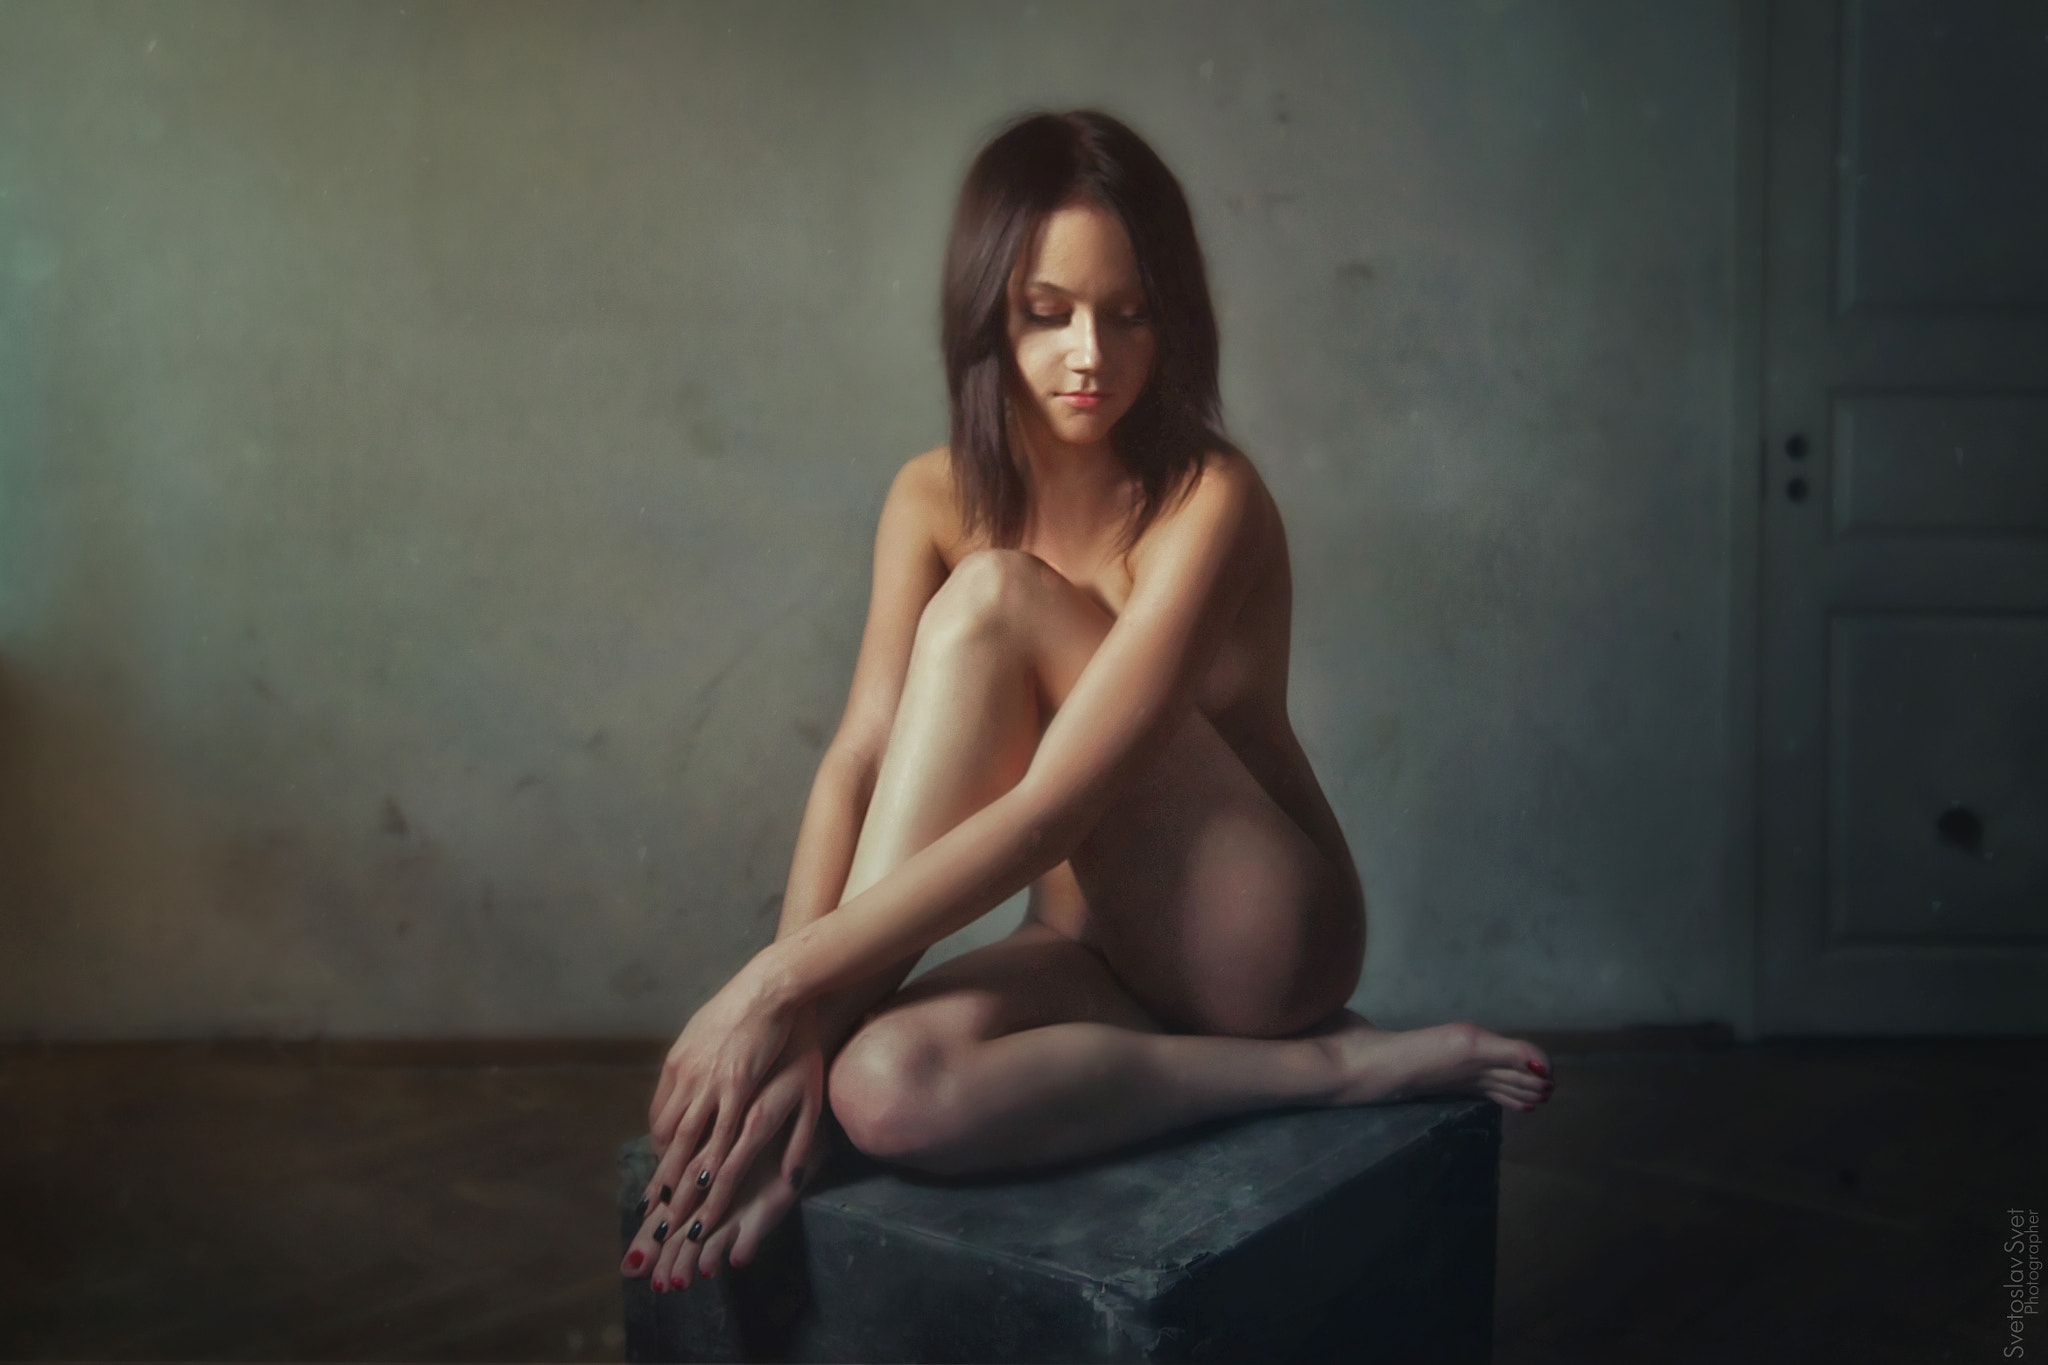 Photograph Girl on a cube by Светослав Свет on 500px